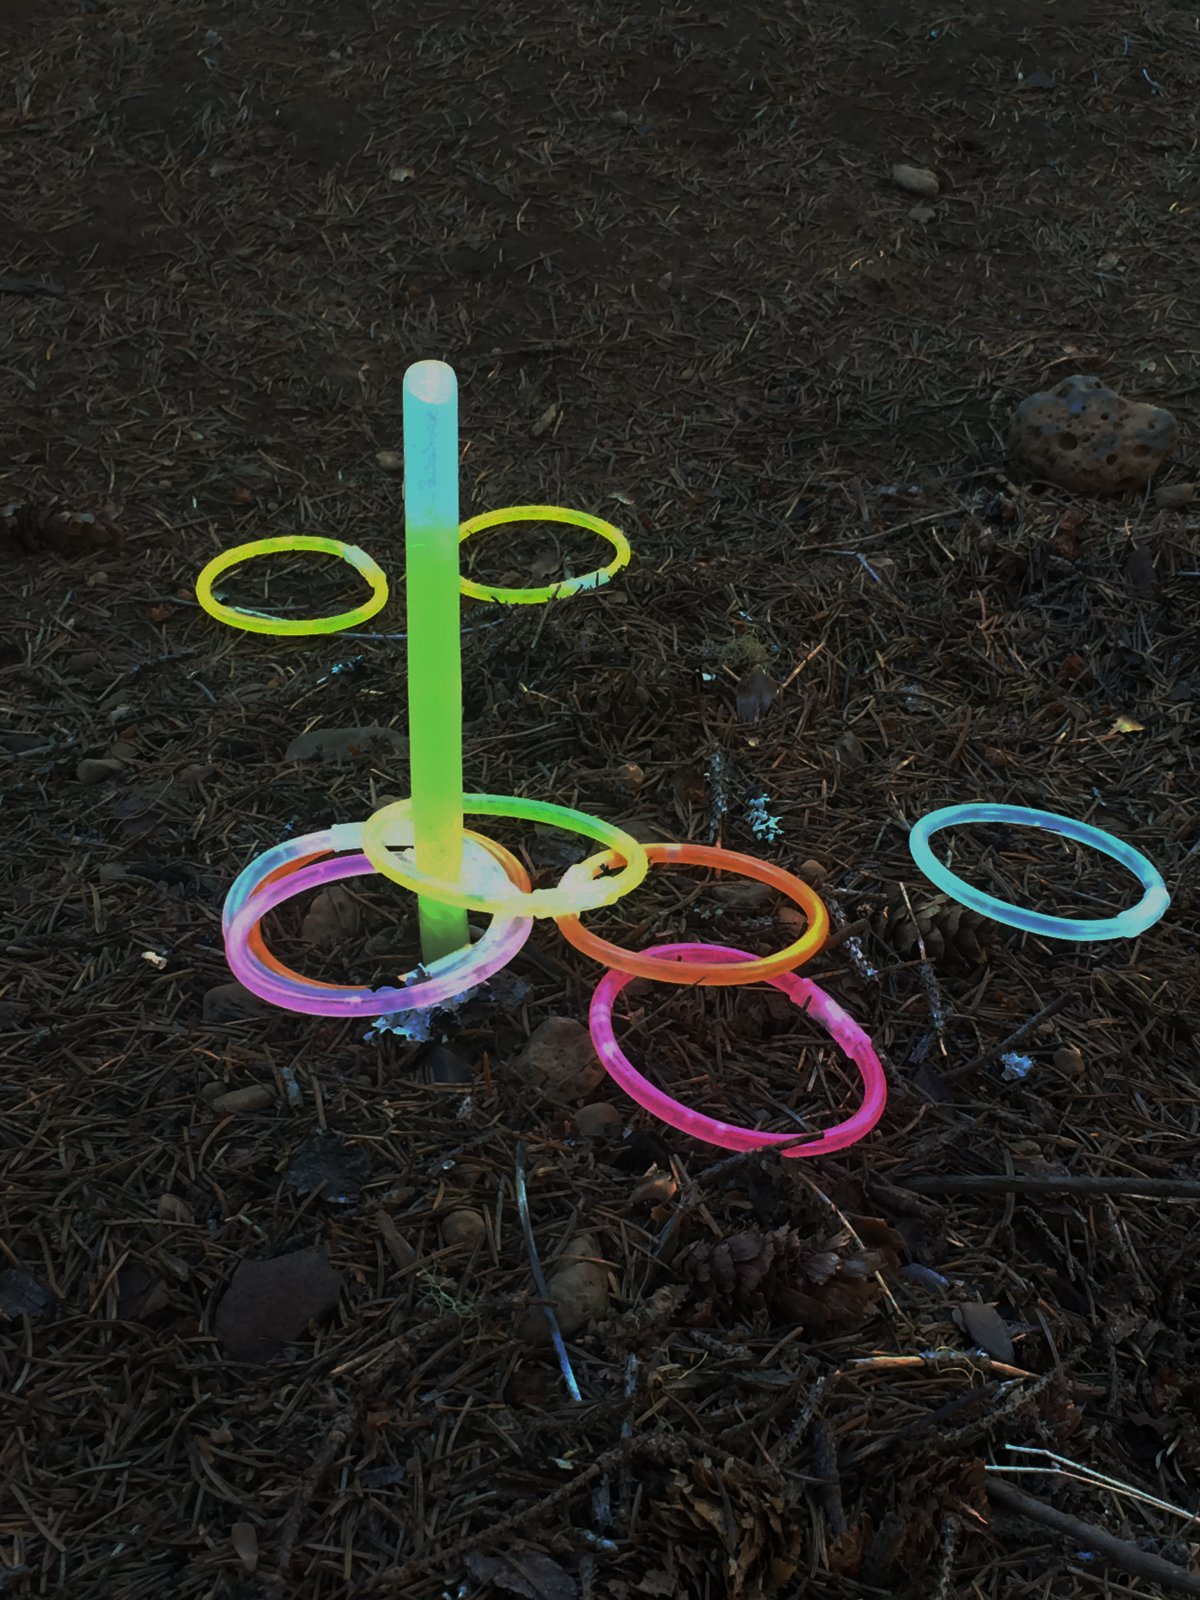 Glow Ring Toss - camping activity for kids at night